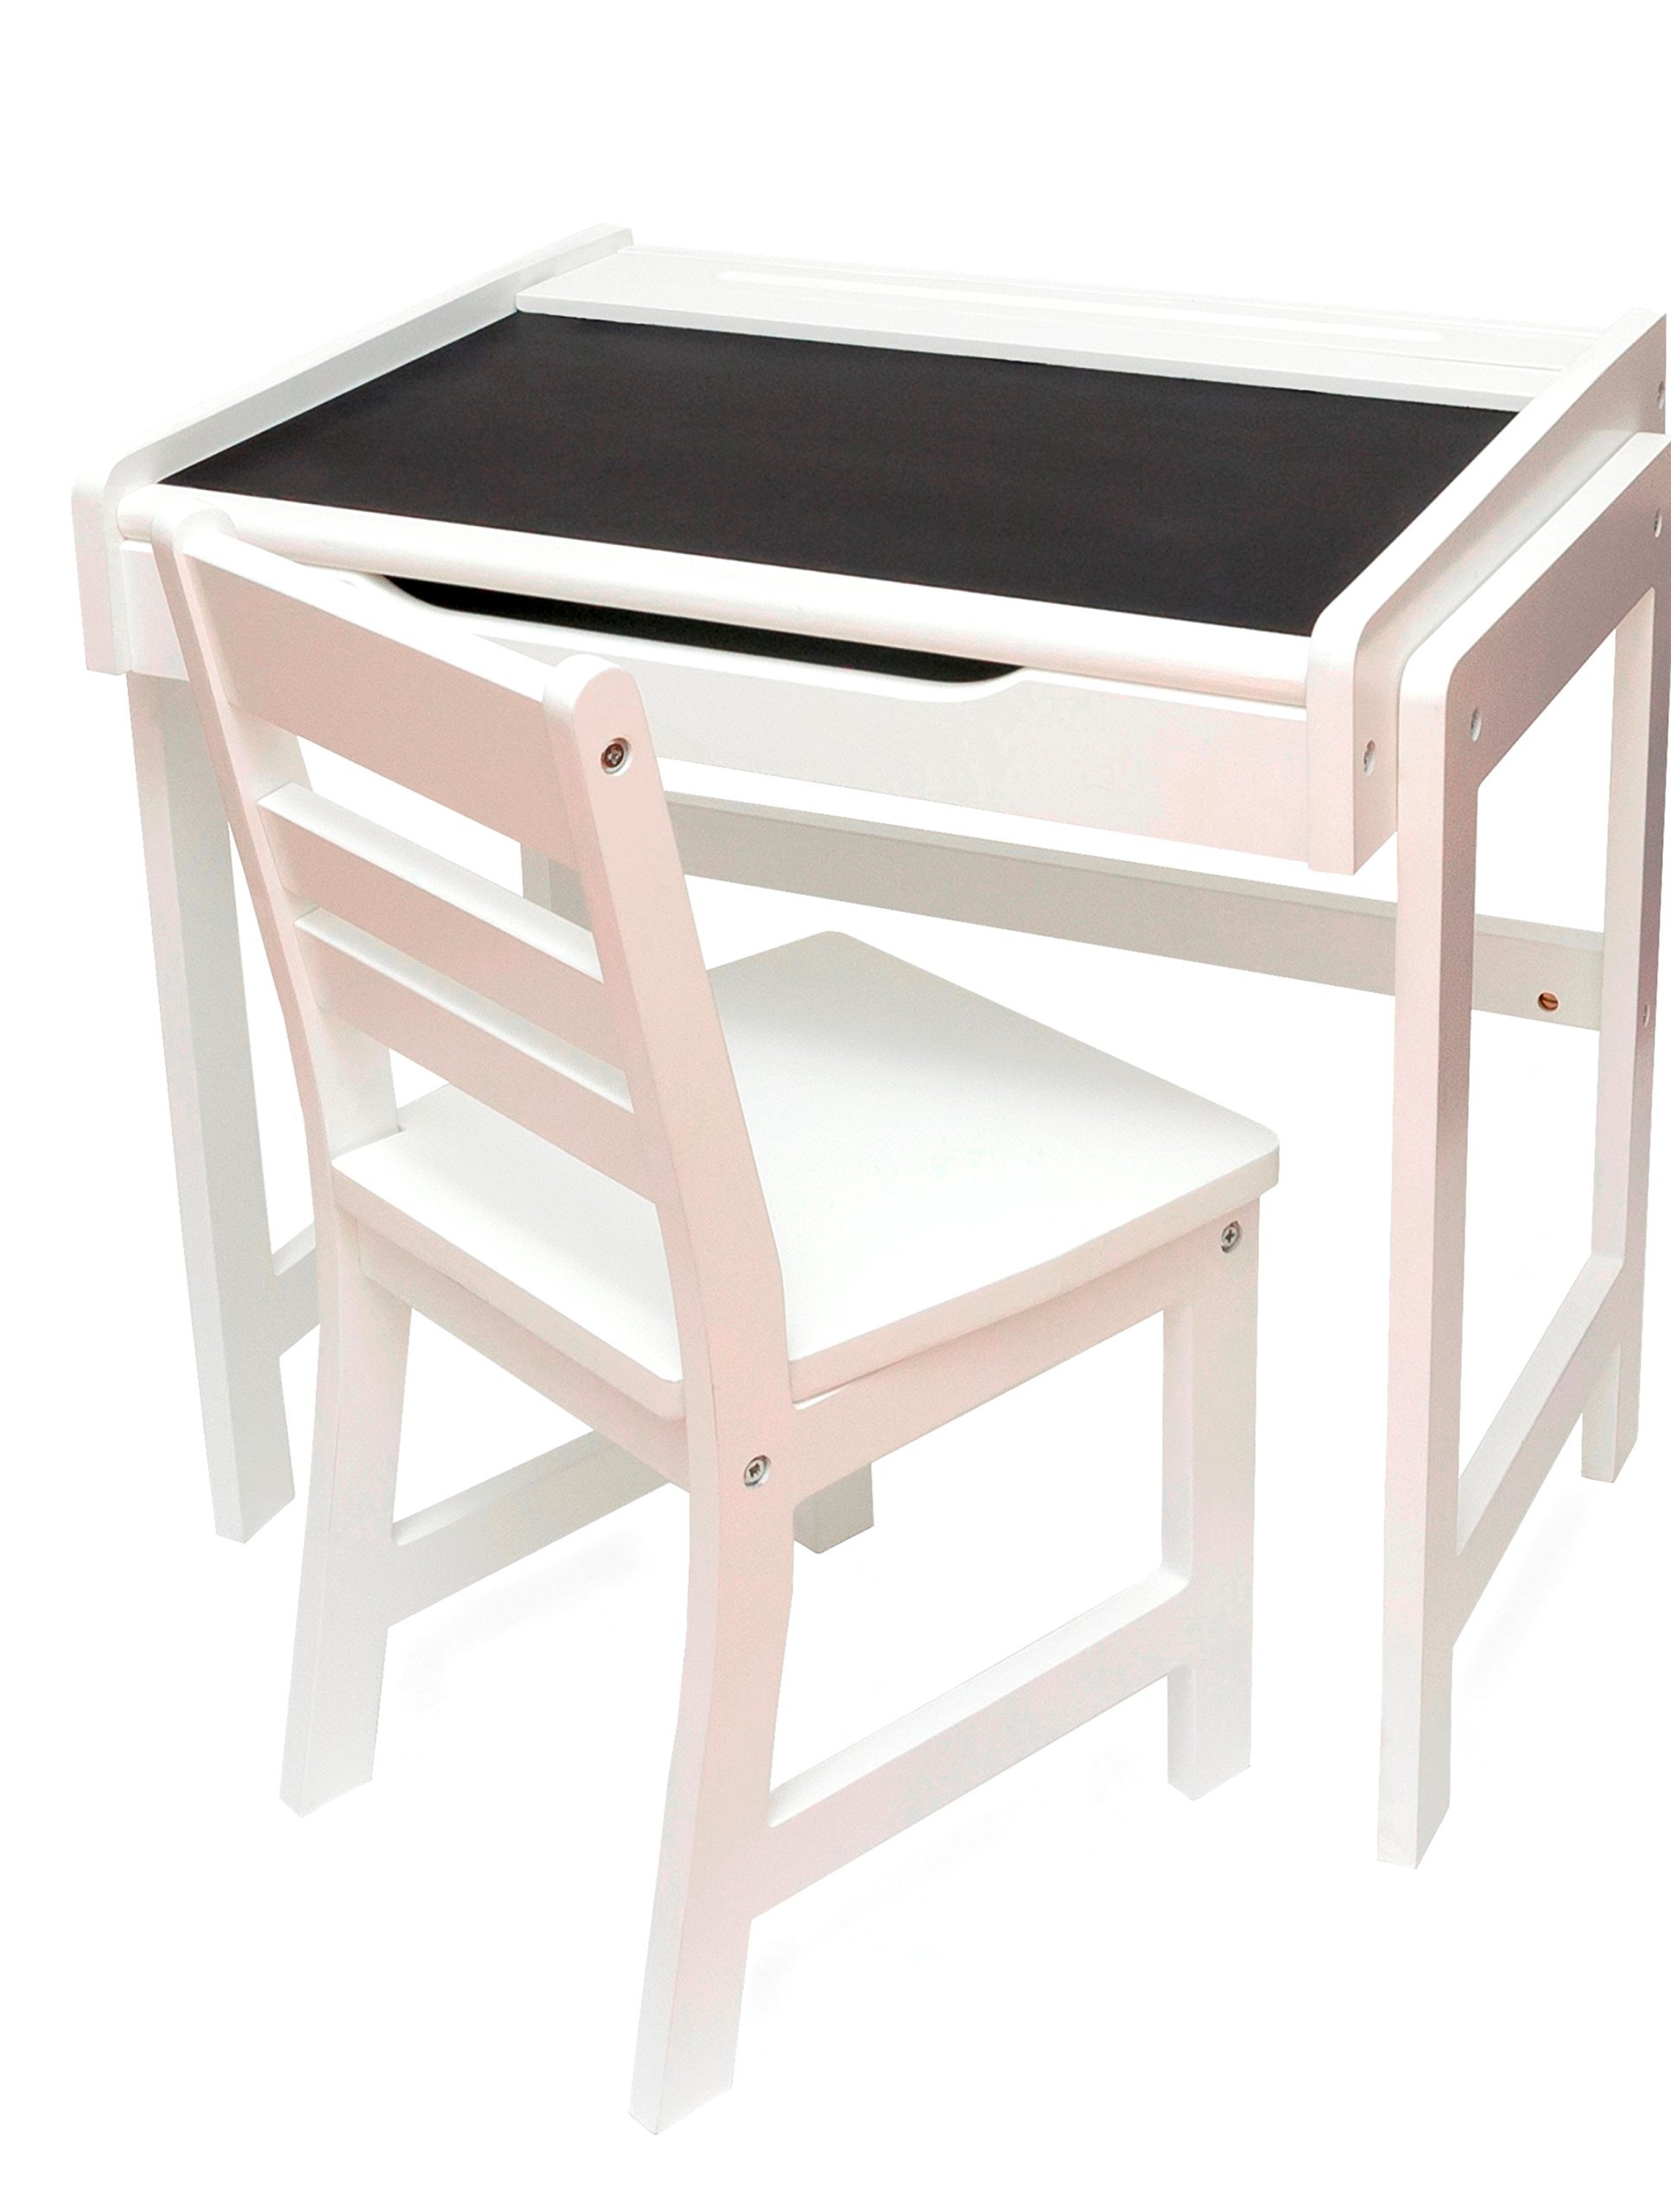 Lipper International 654WH Child's Desk with Chalkboard Top and Chair Set, White by Lipper International